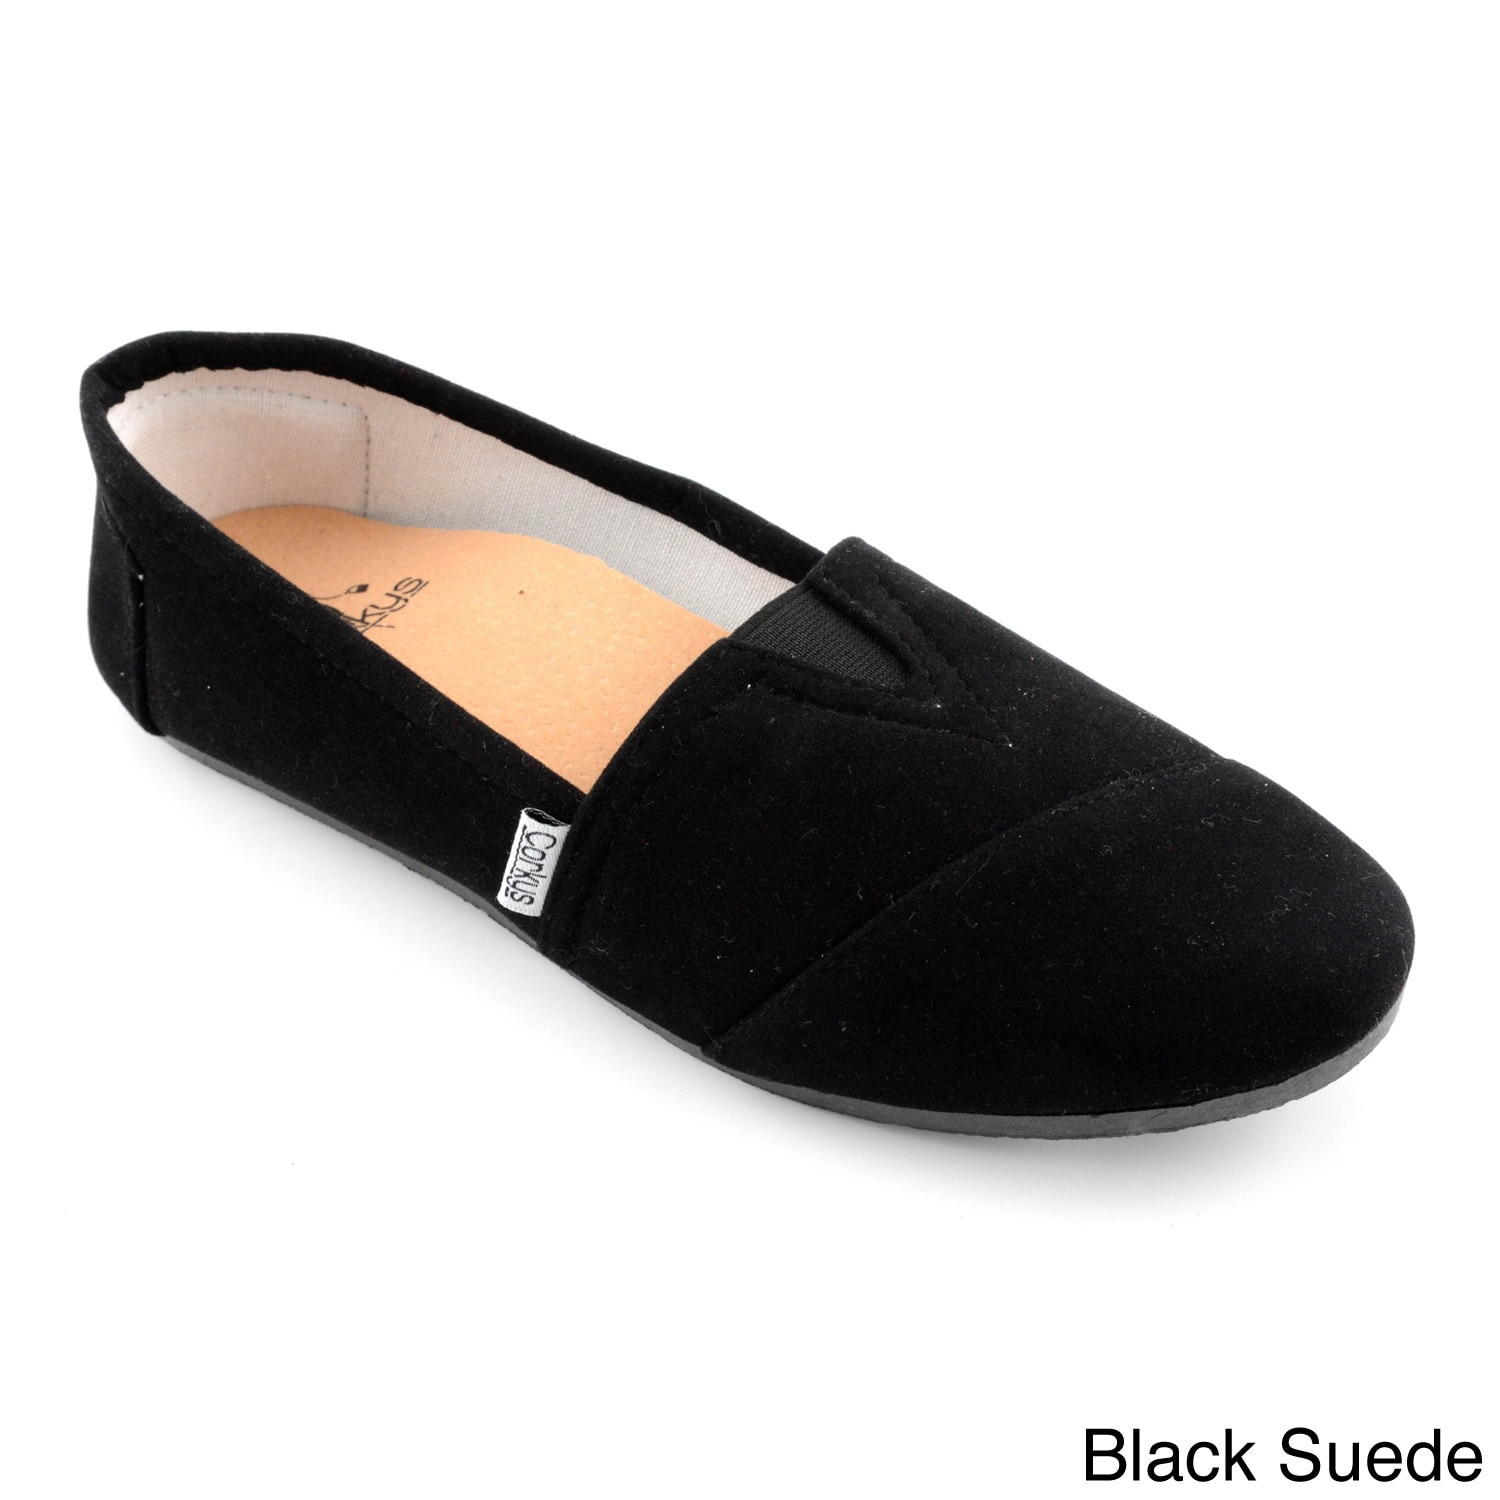 Corkys Women's Slip On Suede Sues at Sears.com